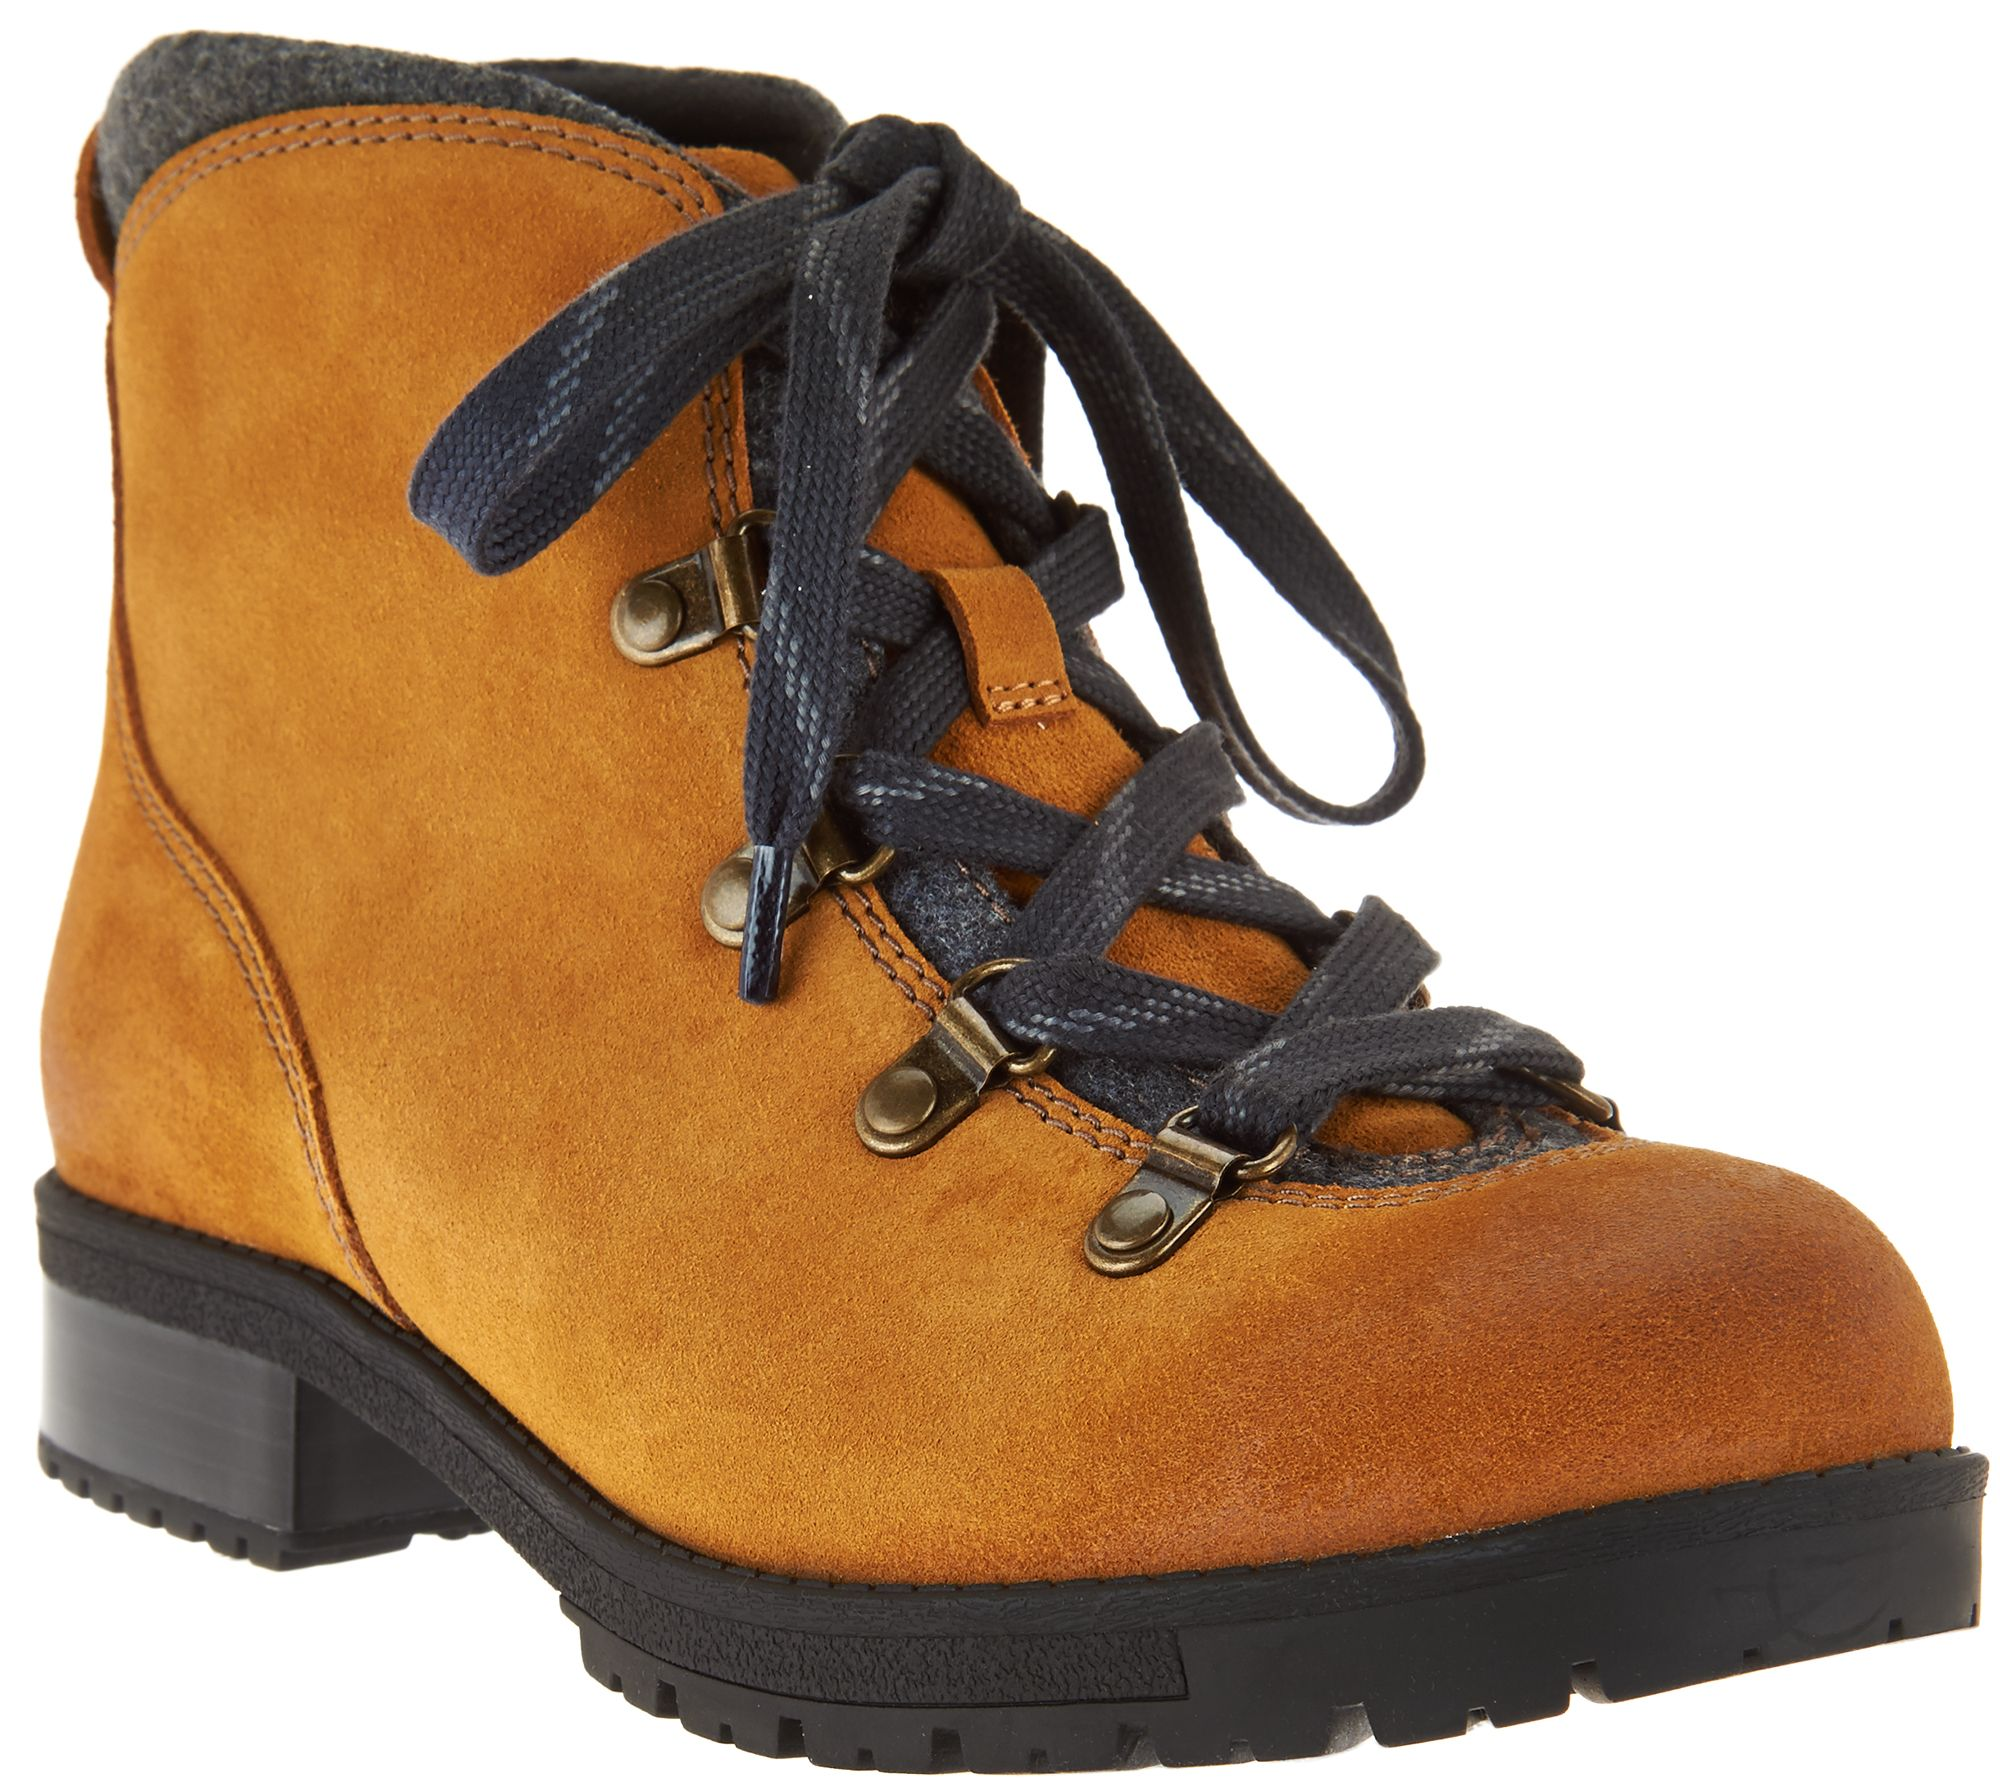 Clarks Leather Water Resistant Hiking Boots Faralyn Alpha —